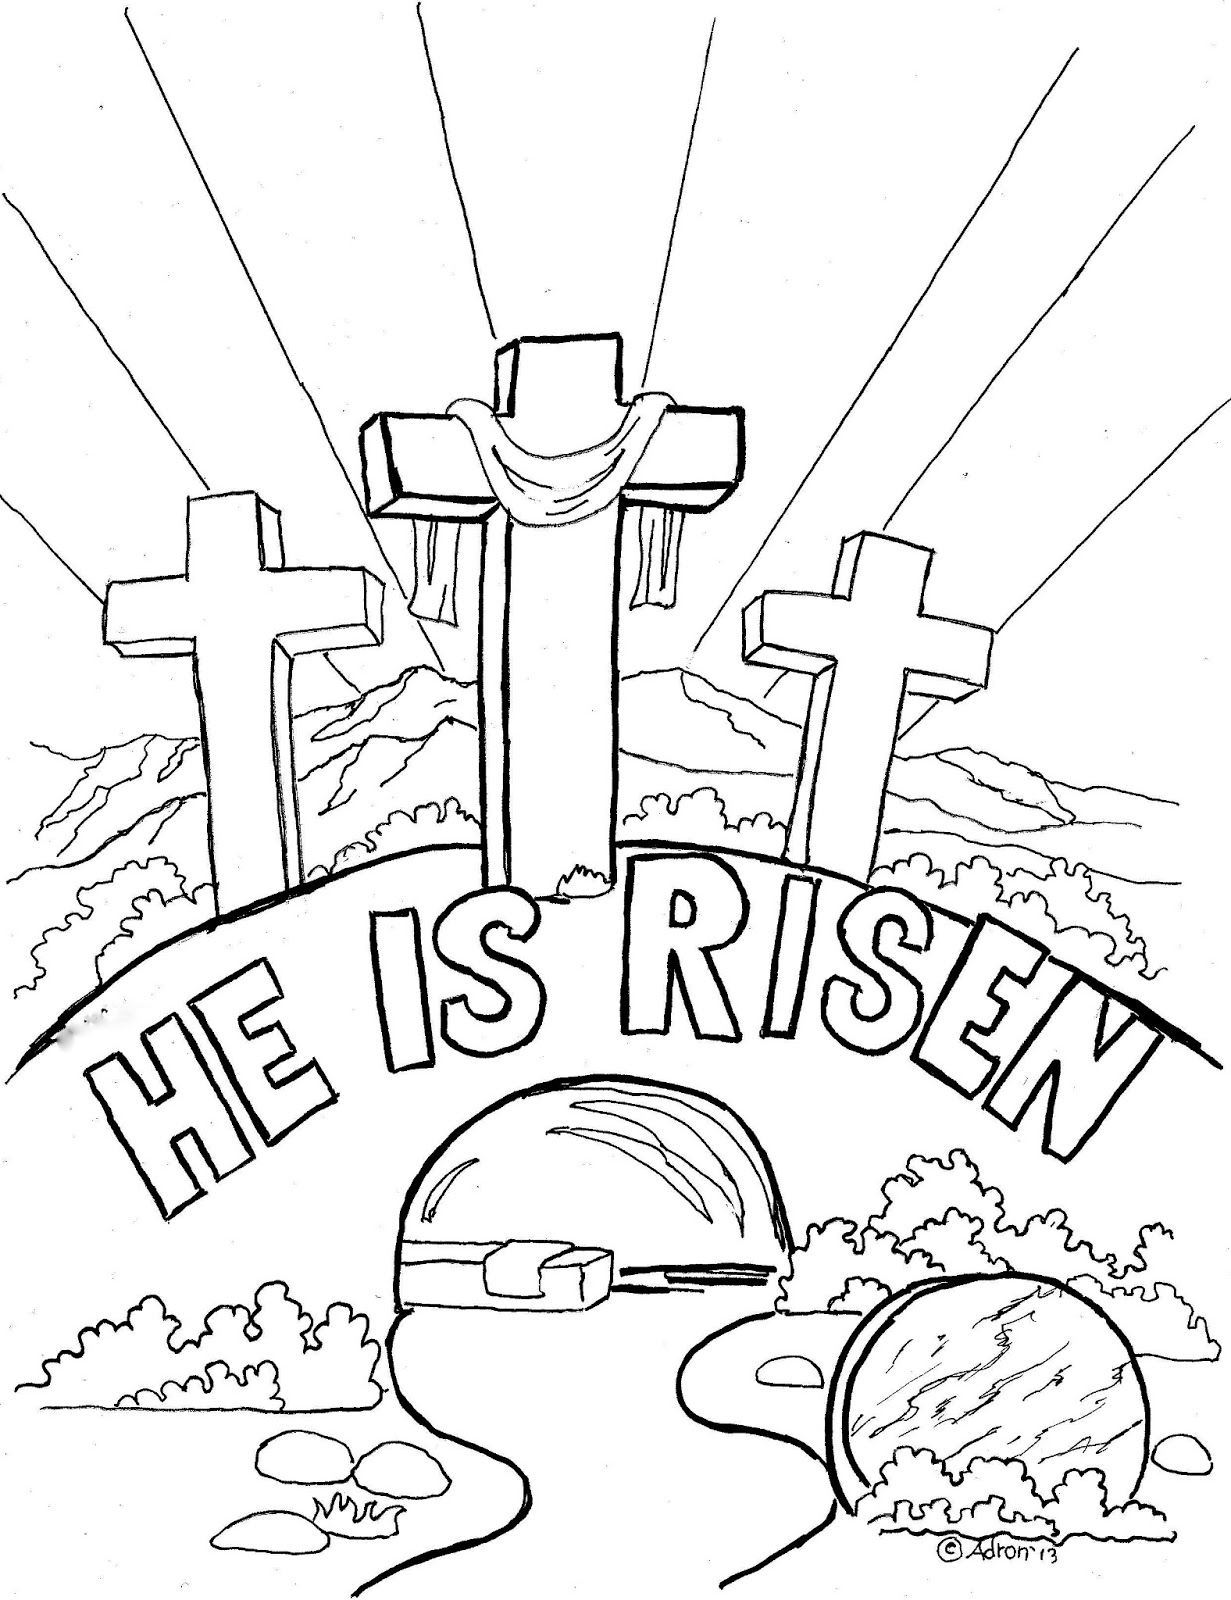 Easter Coloring Page For Kids He Is Risen The Blog Has Suggestions Bible PagesFree Printable